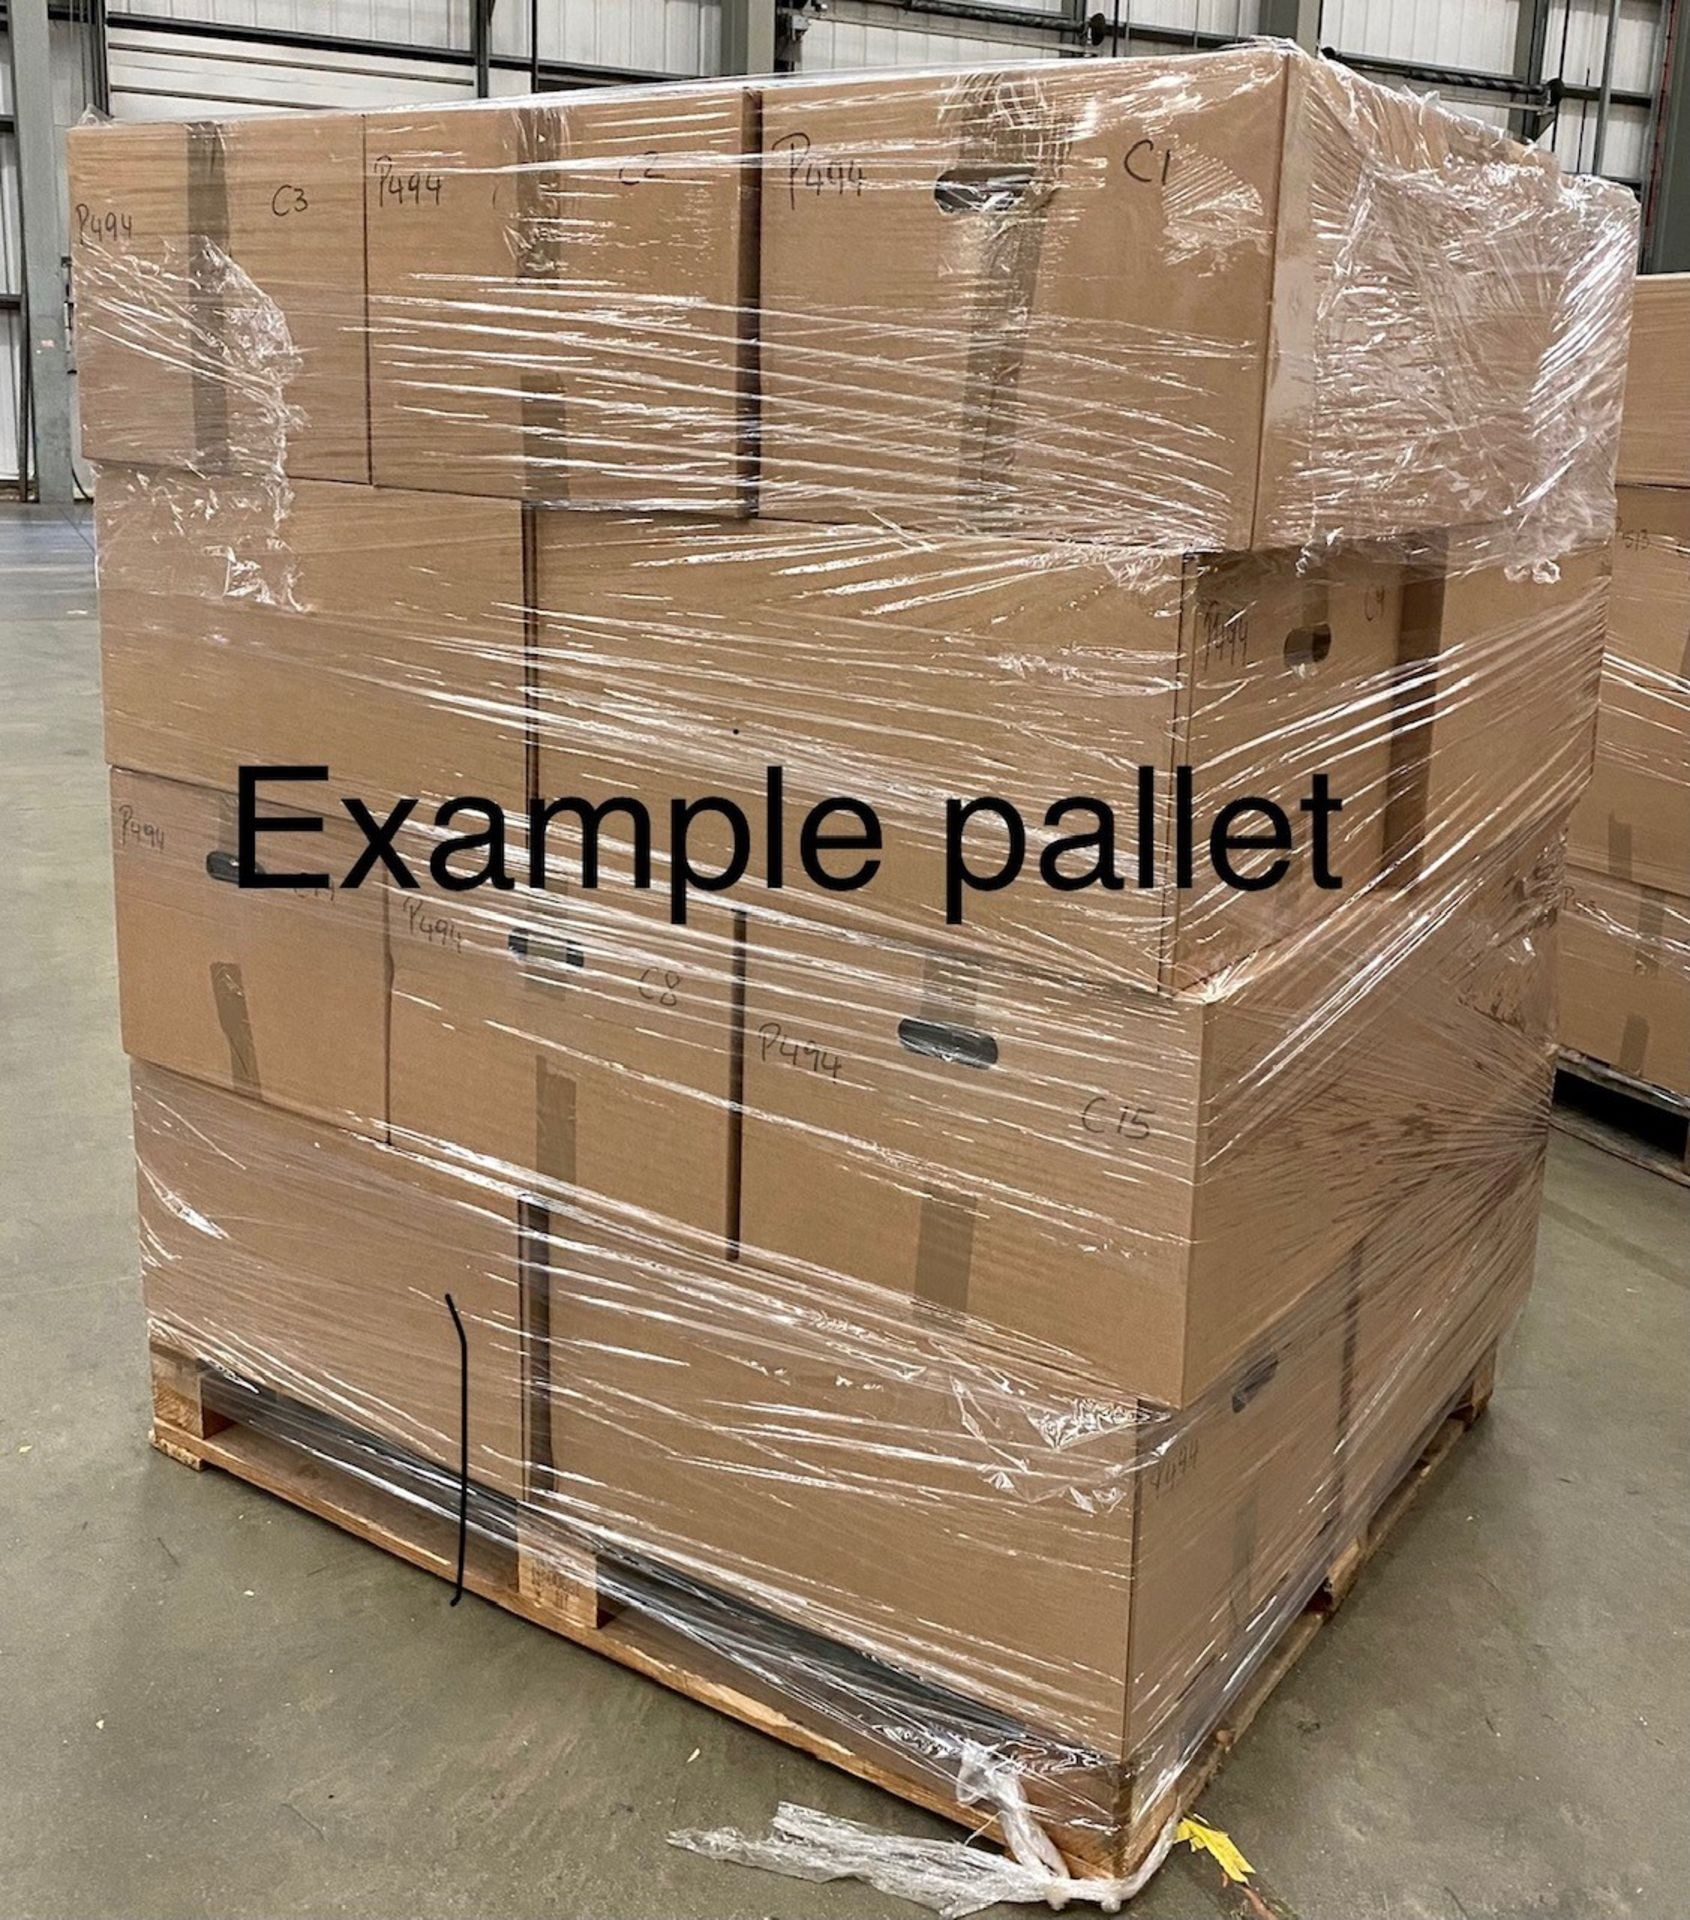 1 x mixed pallet = 264 items of Grade A M&S Menswear Clothing. Total RRP £7775.50 - Image 7 of 8